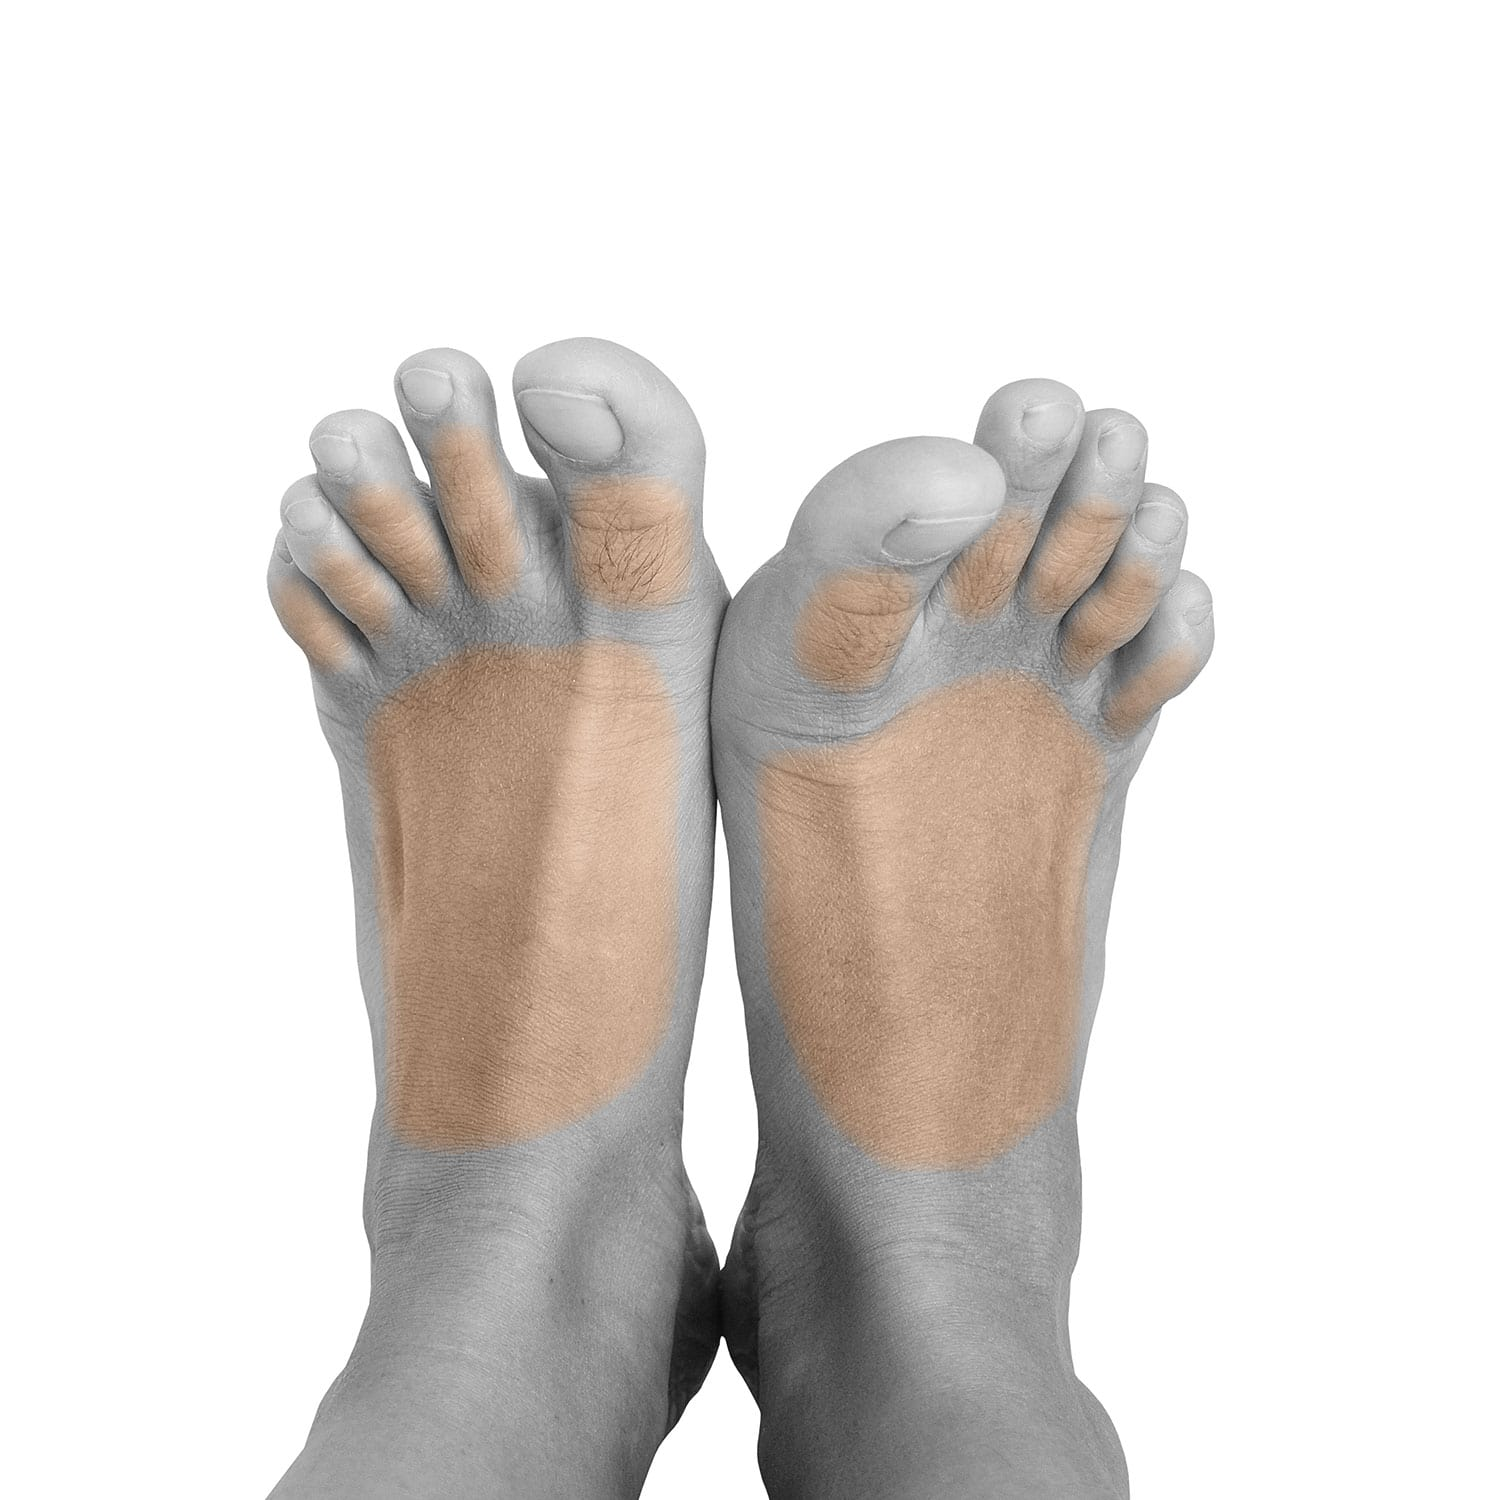 Men's Feet Laser Hair Removal In NYC